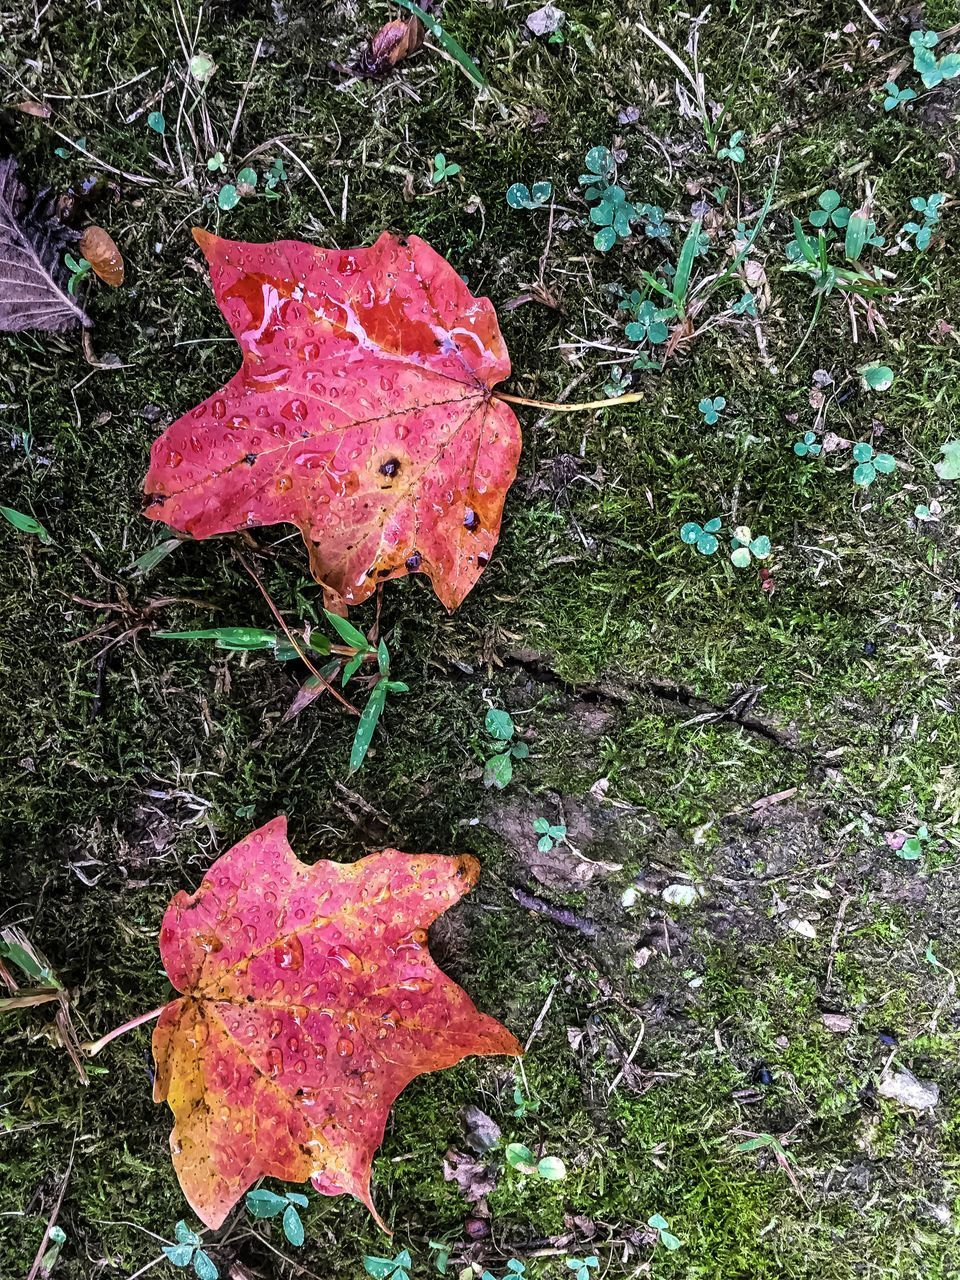 leaf, autumn, field, change, dry, nature, day, high angle view, outdoors, no people, grass, fragility, growth, beauty in nature, maple, close-up, fly agaric mushroom